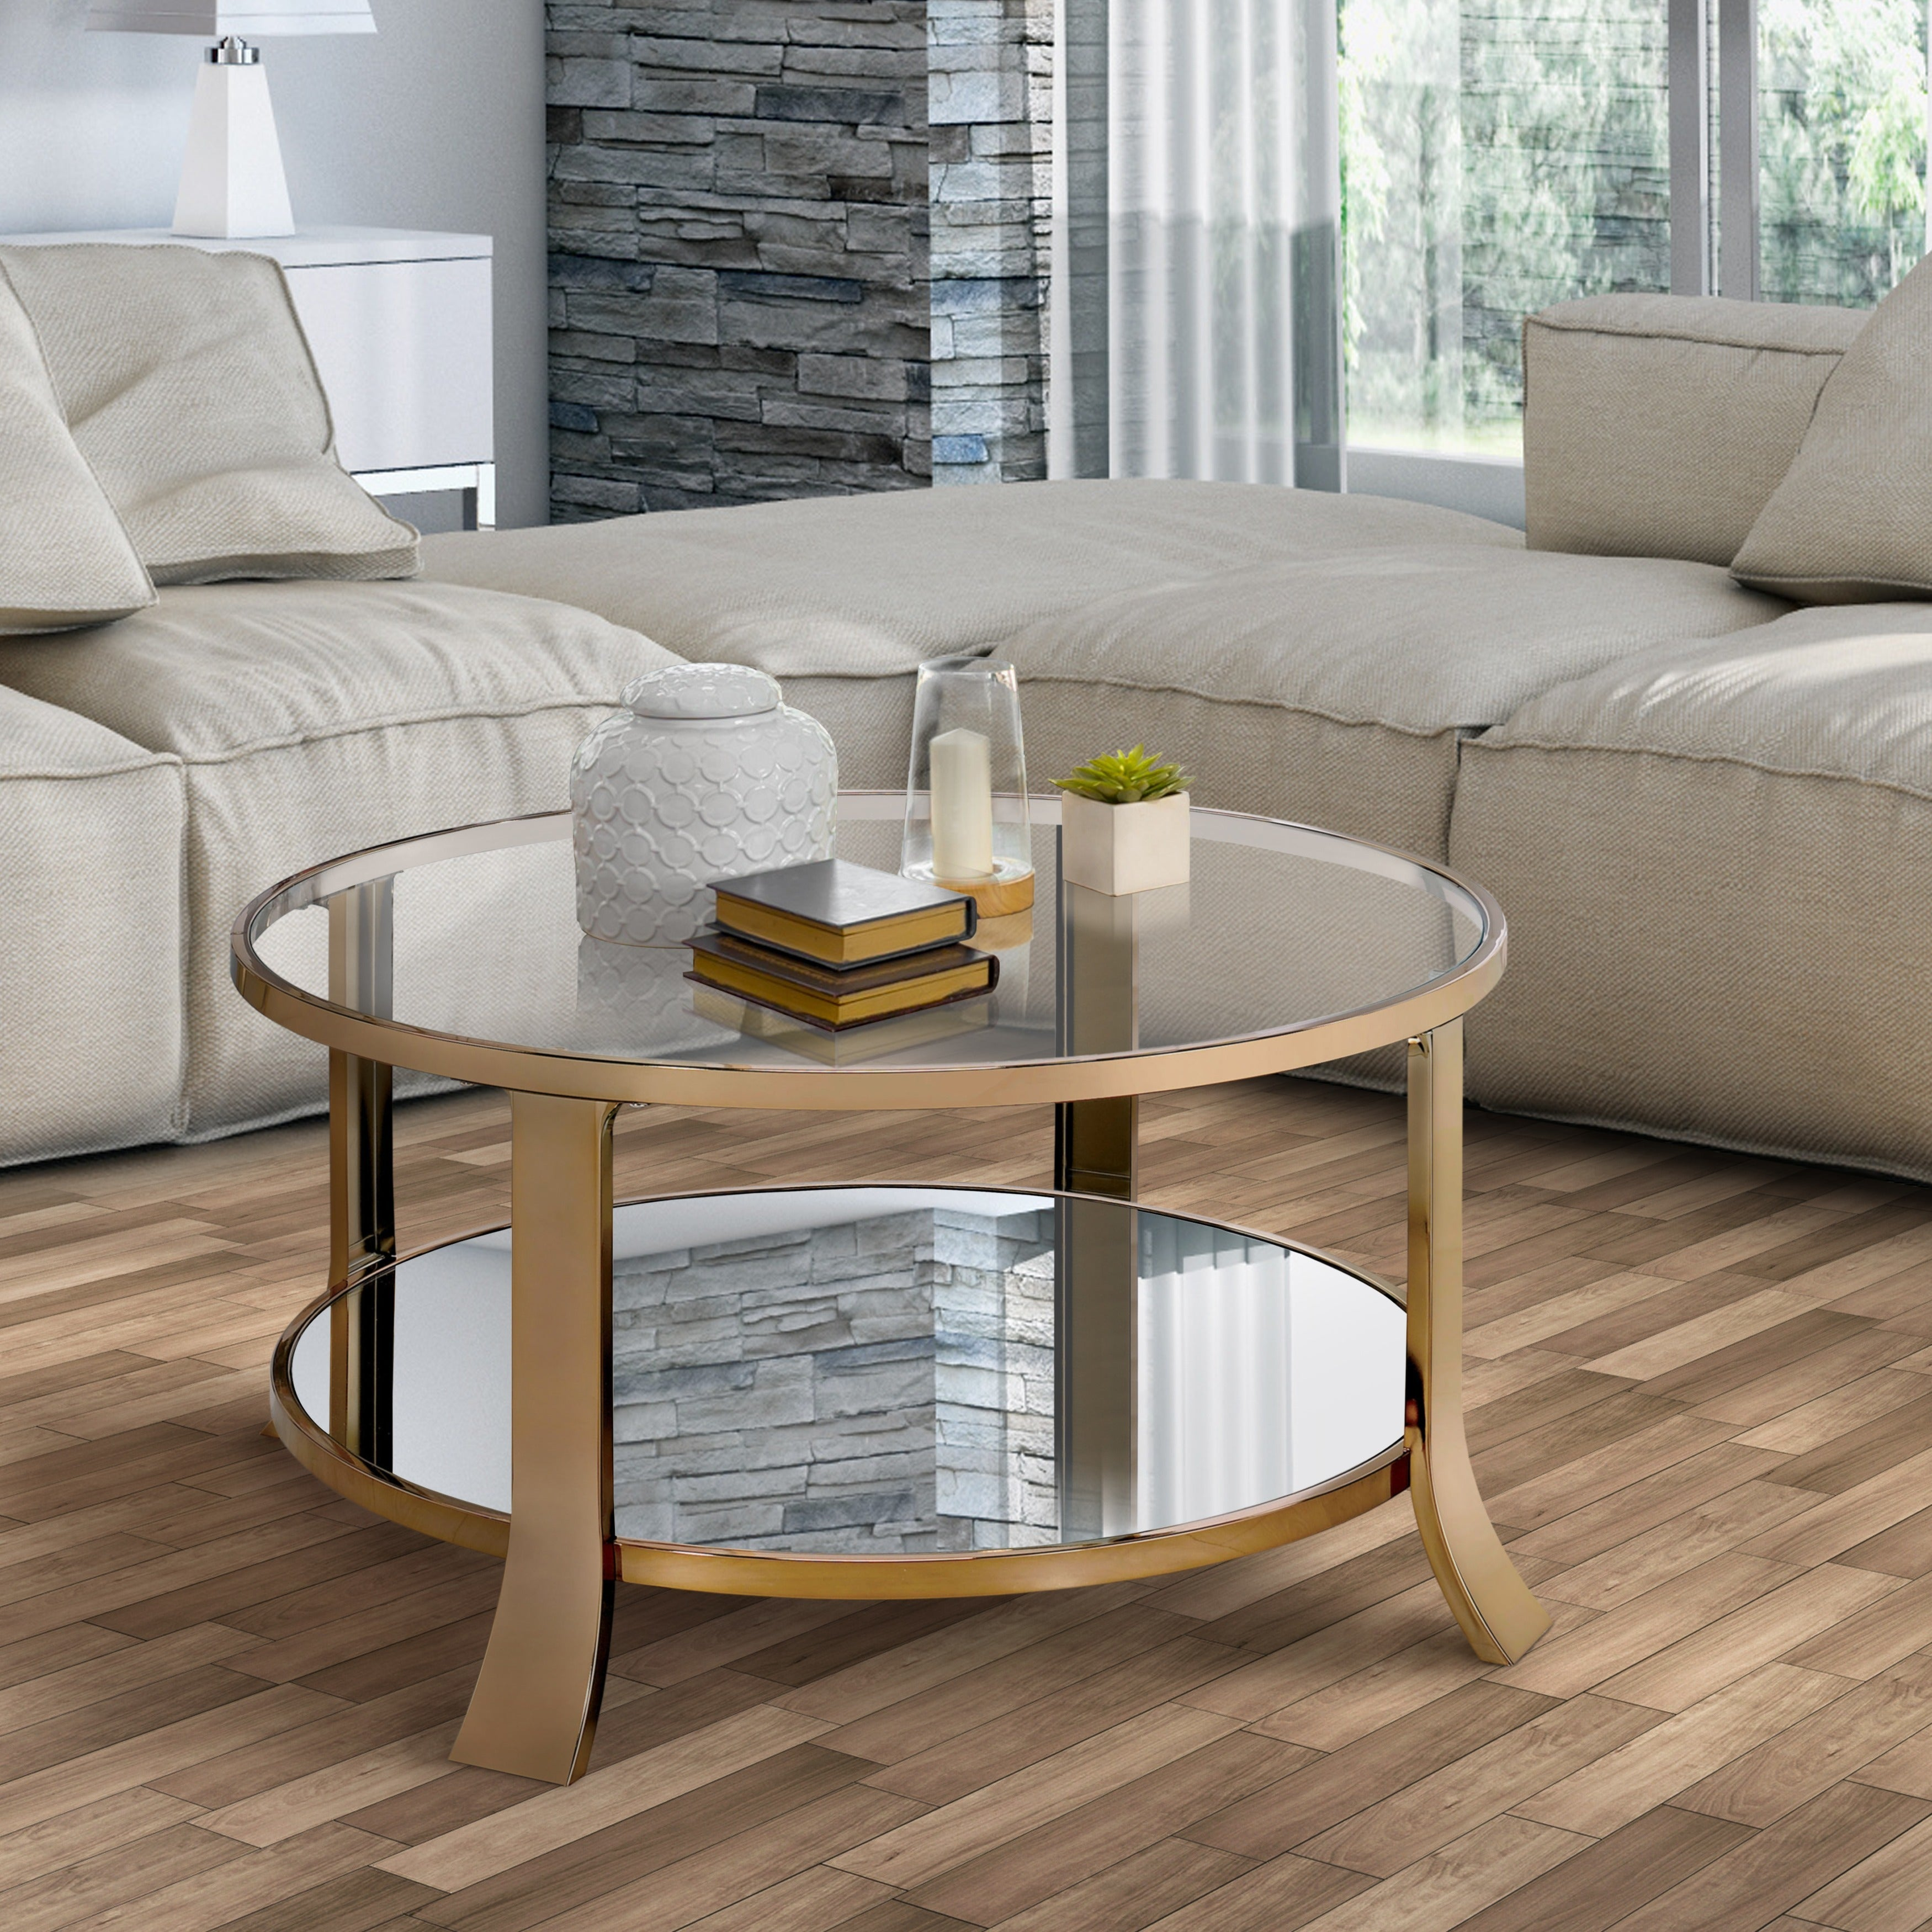 Furniture of America Laya Contemporary Glam Champagne Tempered